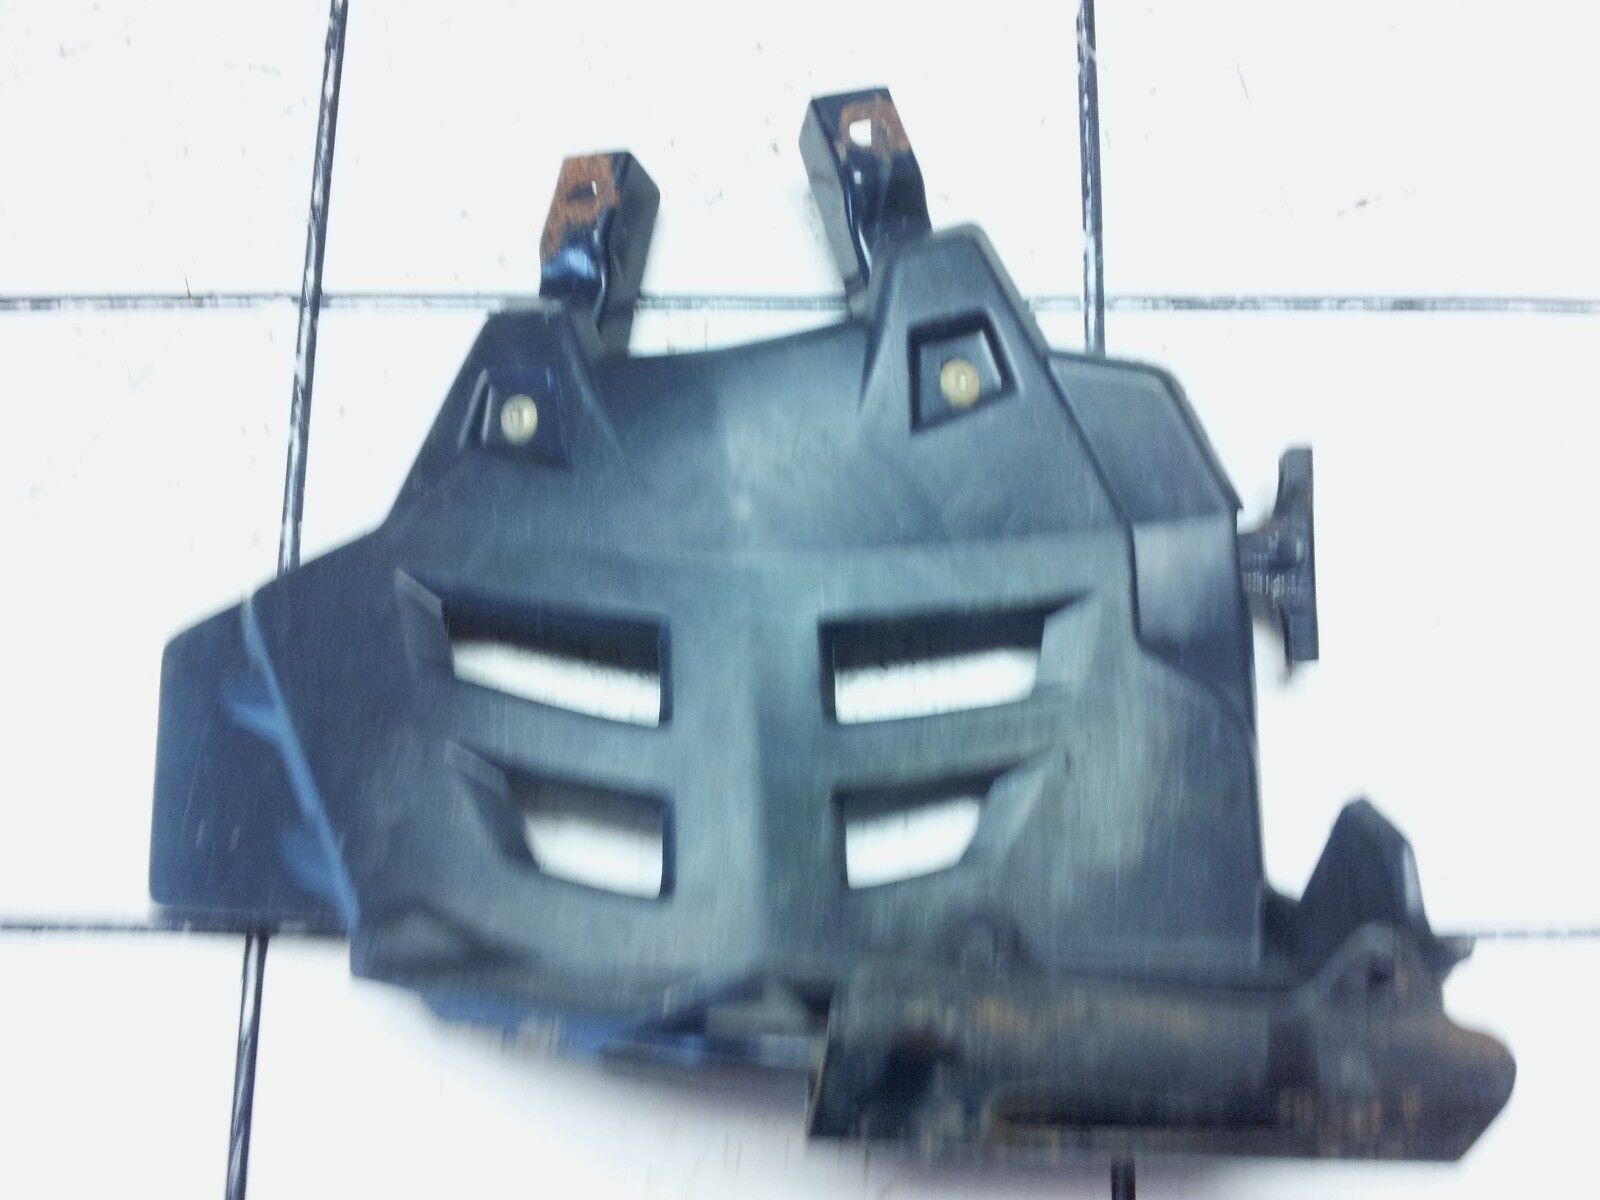 2003-2007 PREDATOR 500 OEM RIGHT FOOT HEEL GUARD HEELGUARD W/ MOUNT 5434432-070